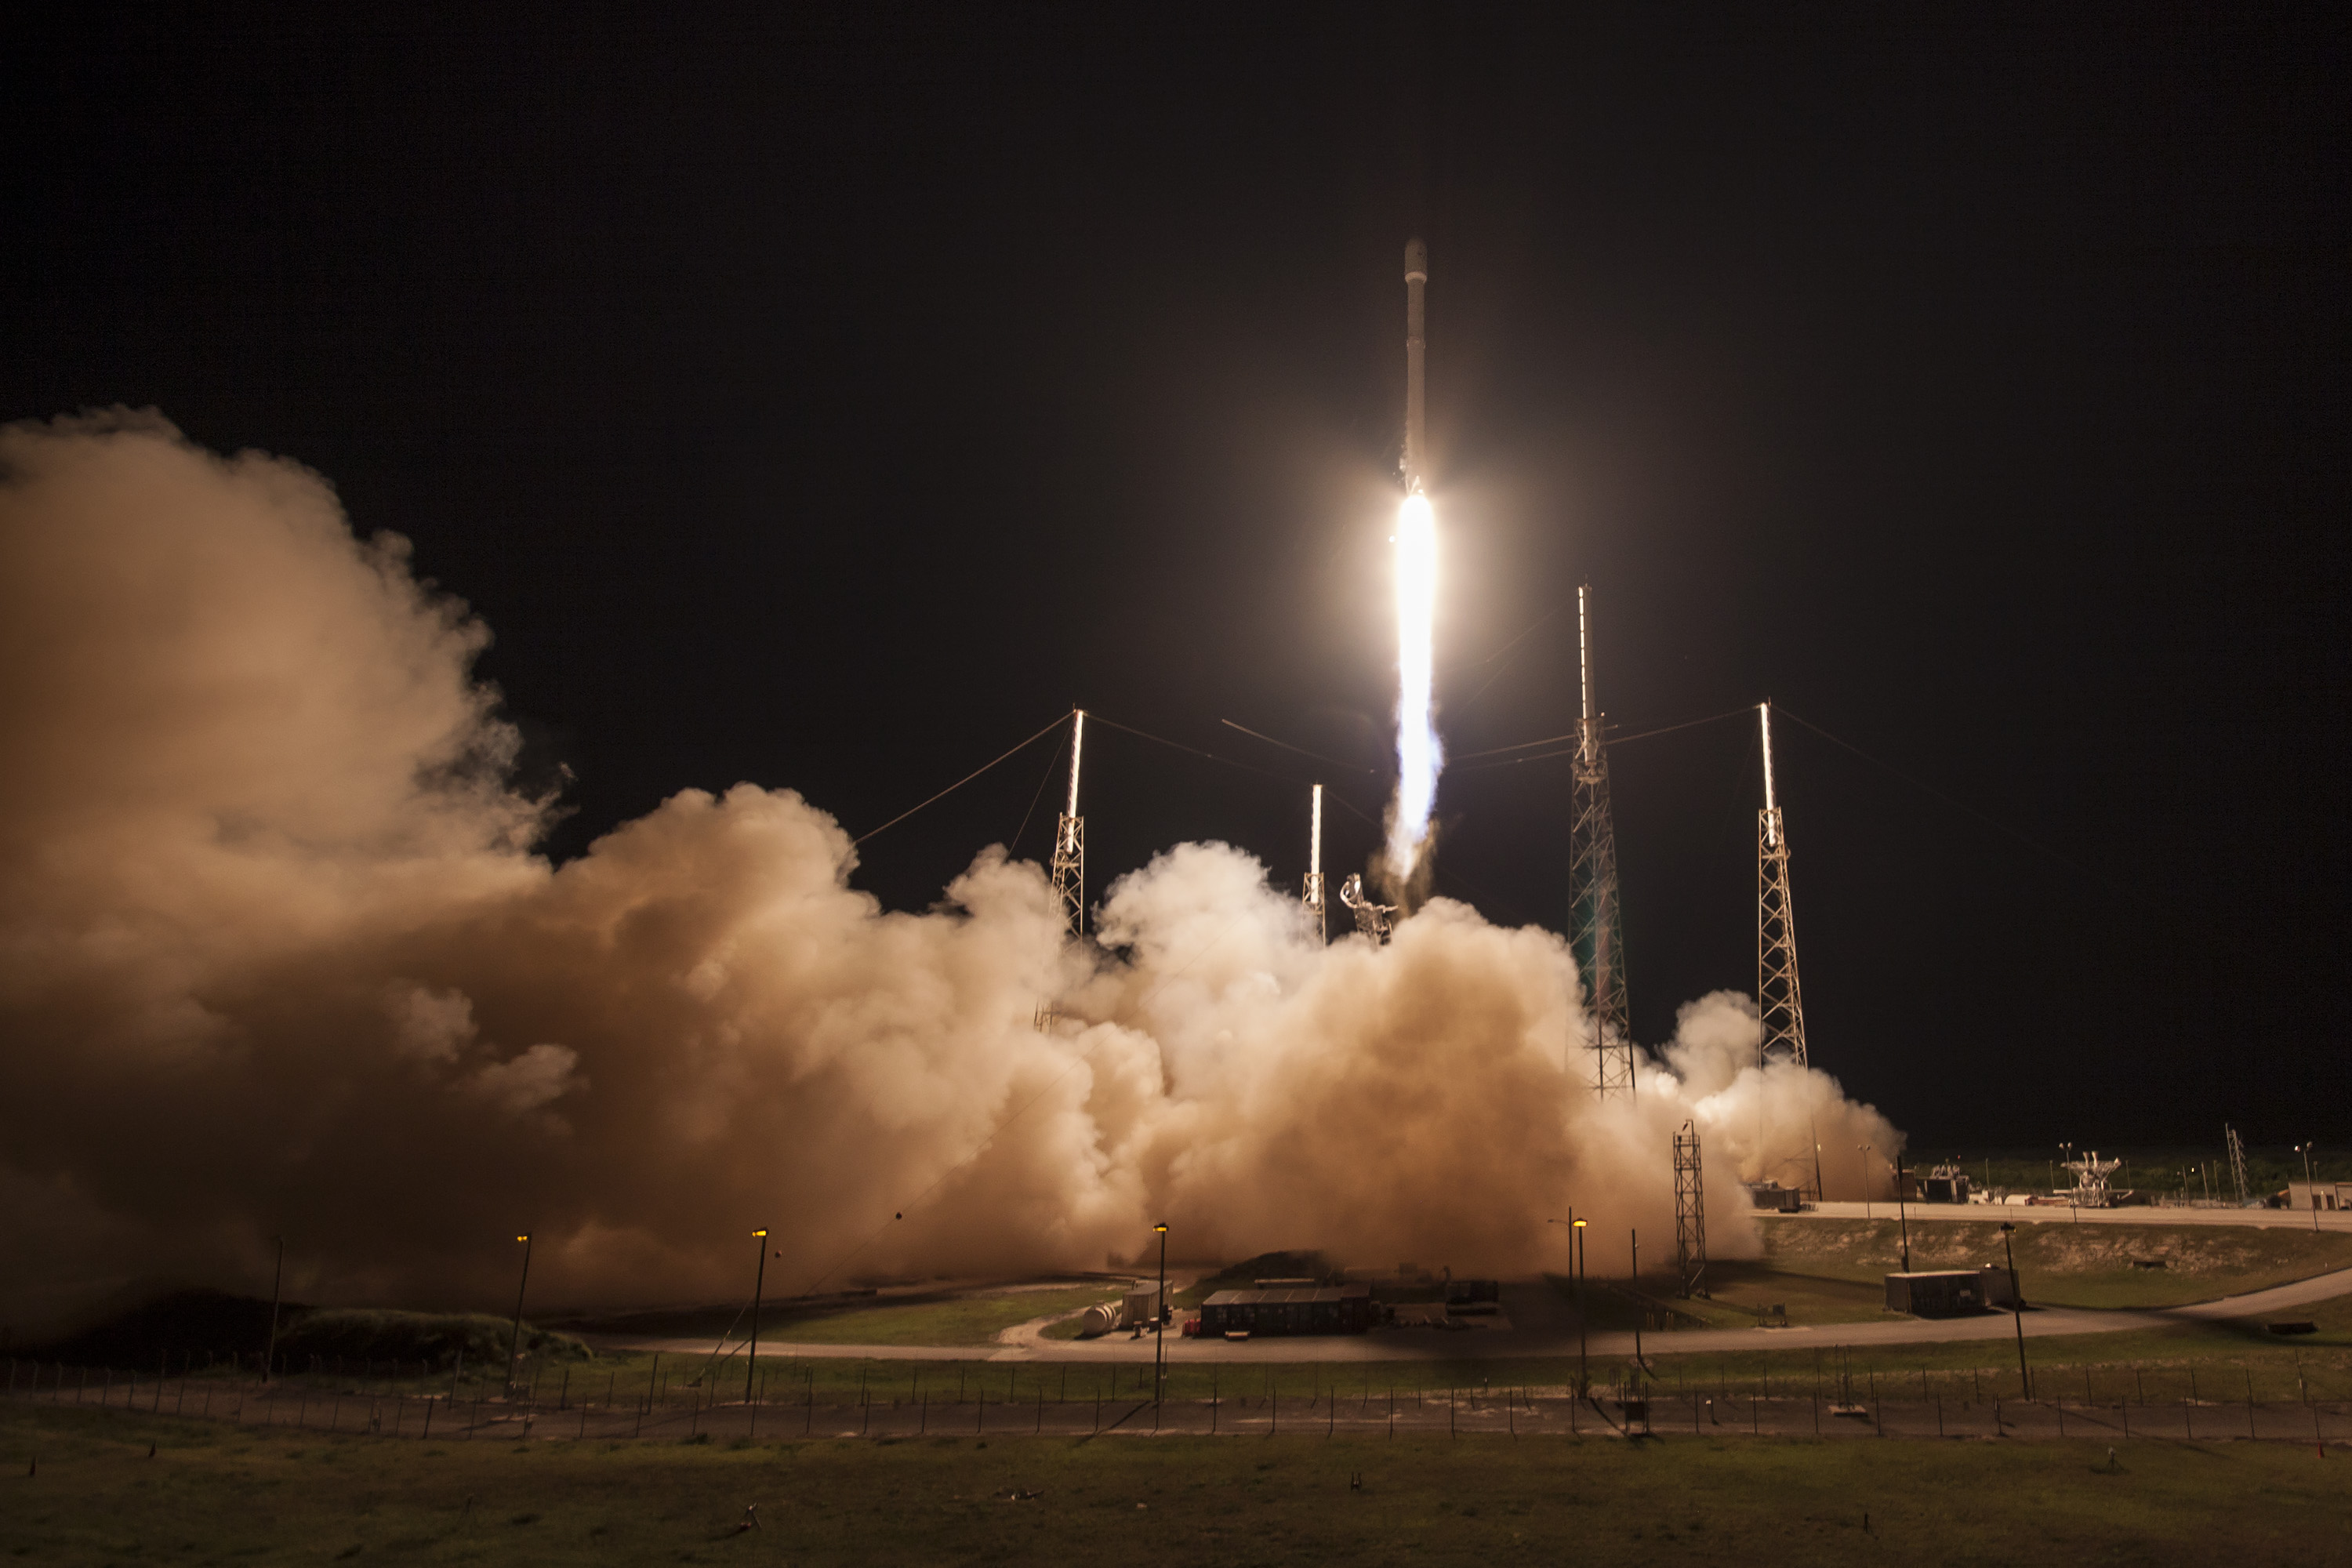 spacex launches rocket - HD2667×2000